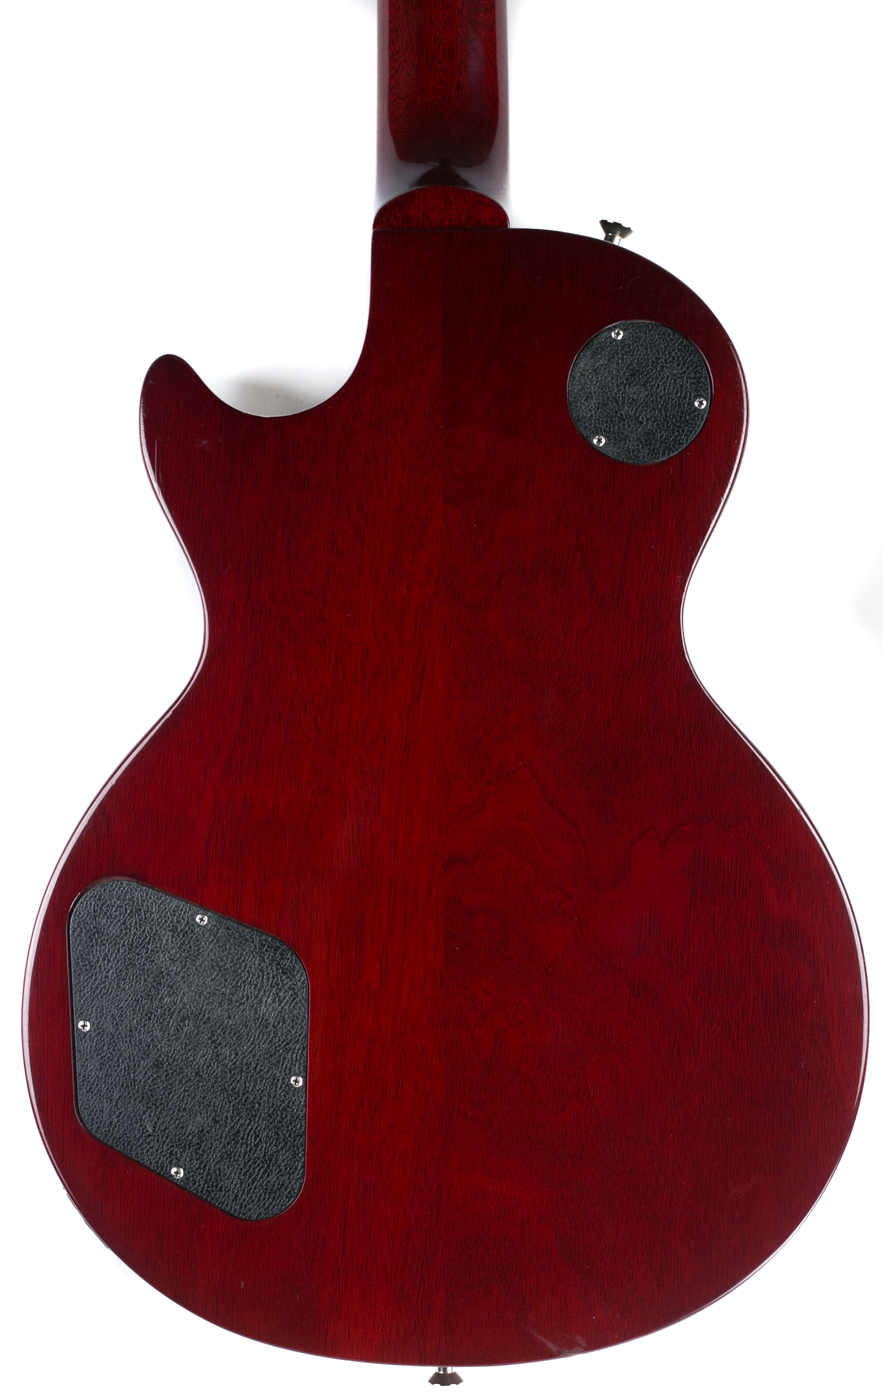 2014 Gibson Les Paul Classic Custom LE Wine Red detail 2